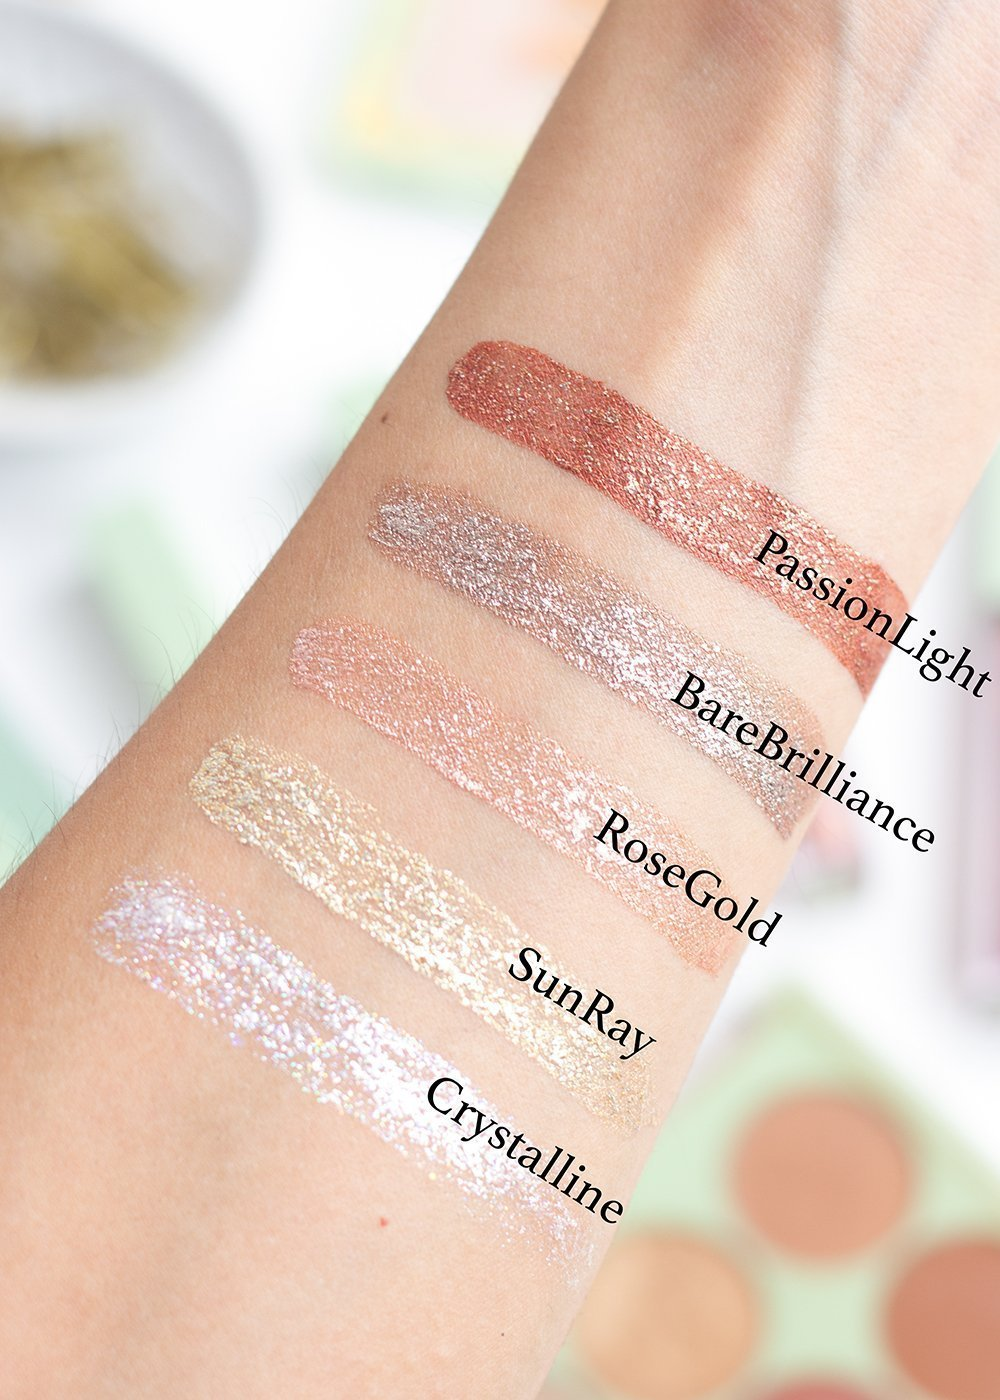 Swatches of the Pixi Liquid Fairy Lights